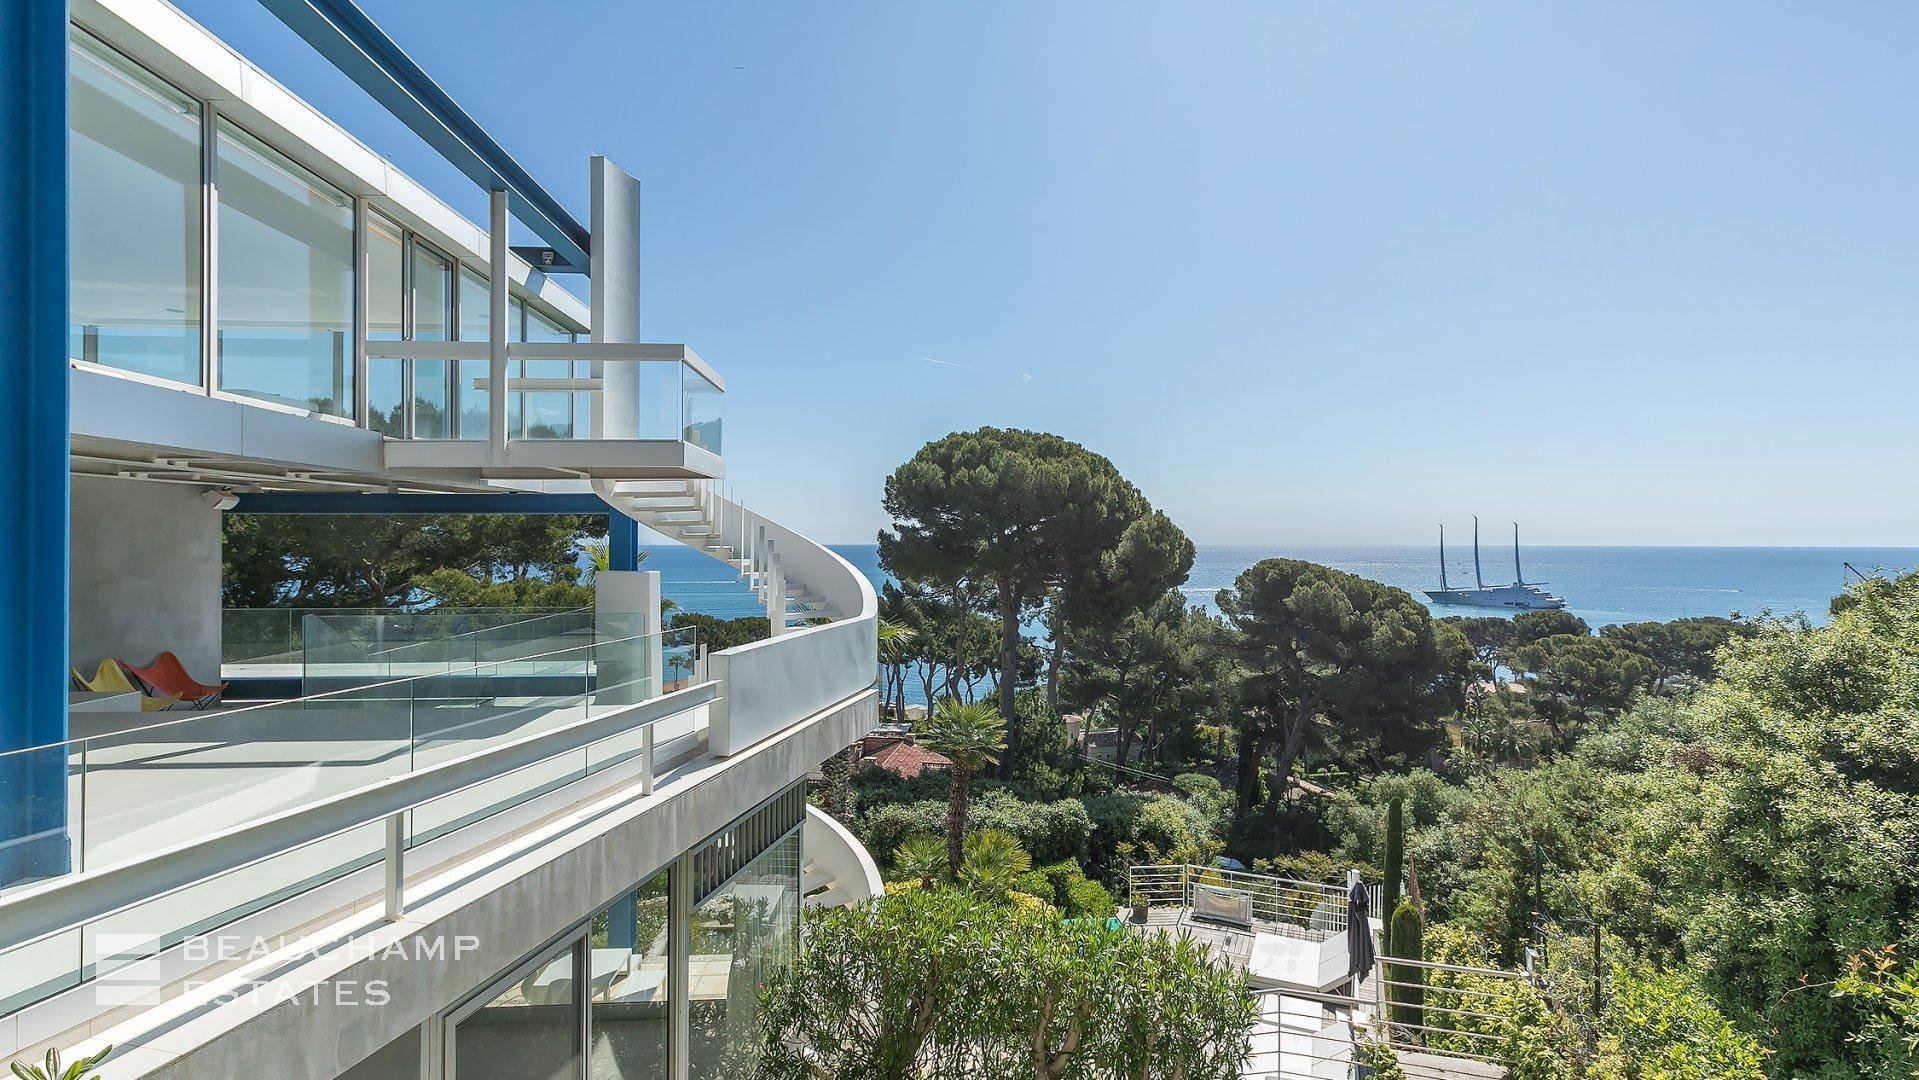 Cap d'Antibes, Architect House of 4 Bedrooms with Incredible views